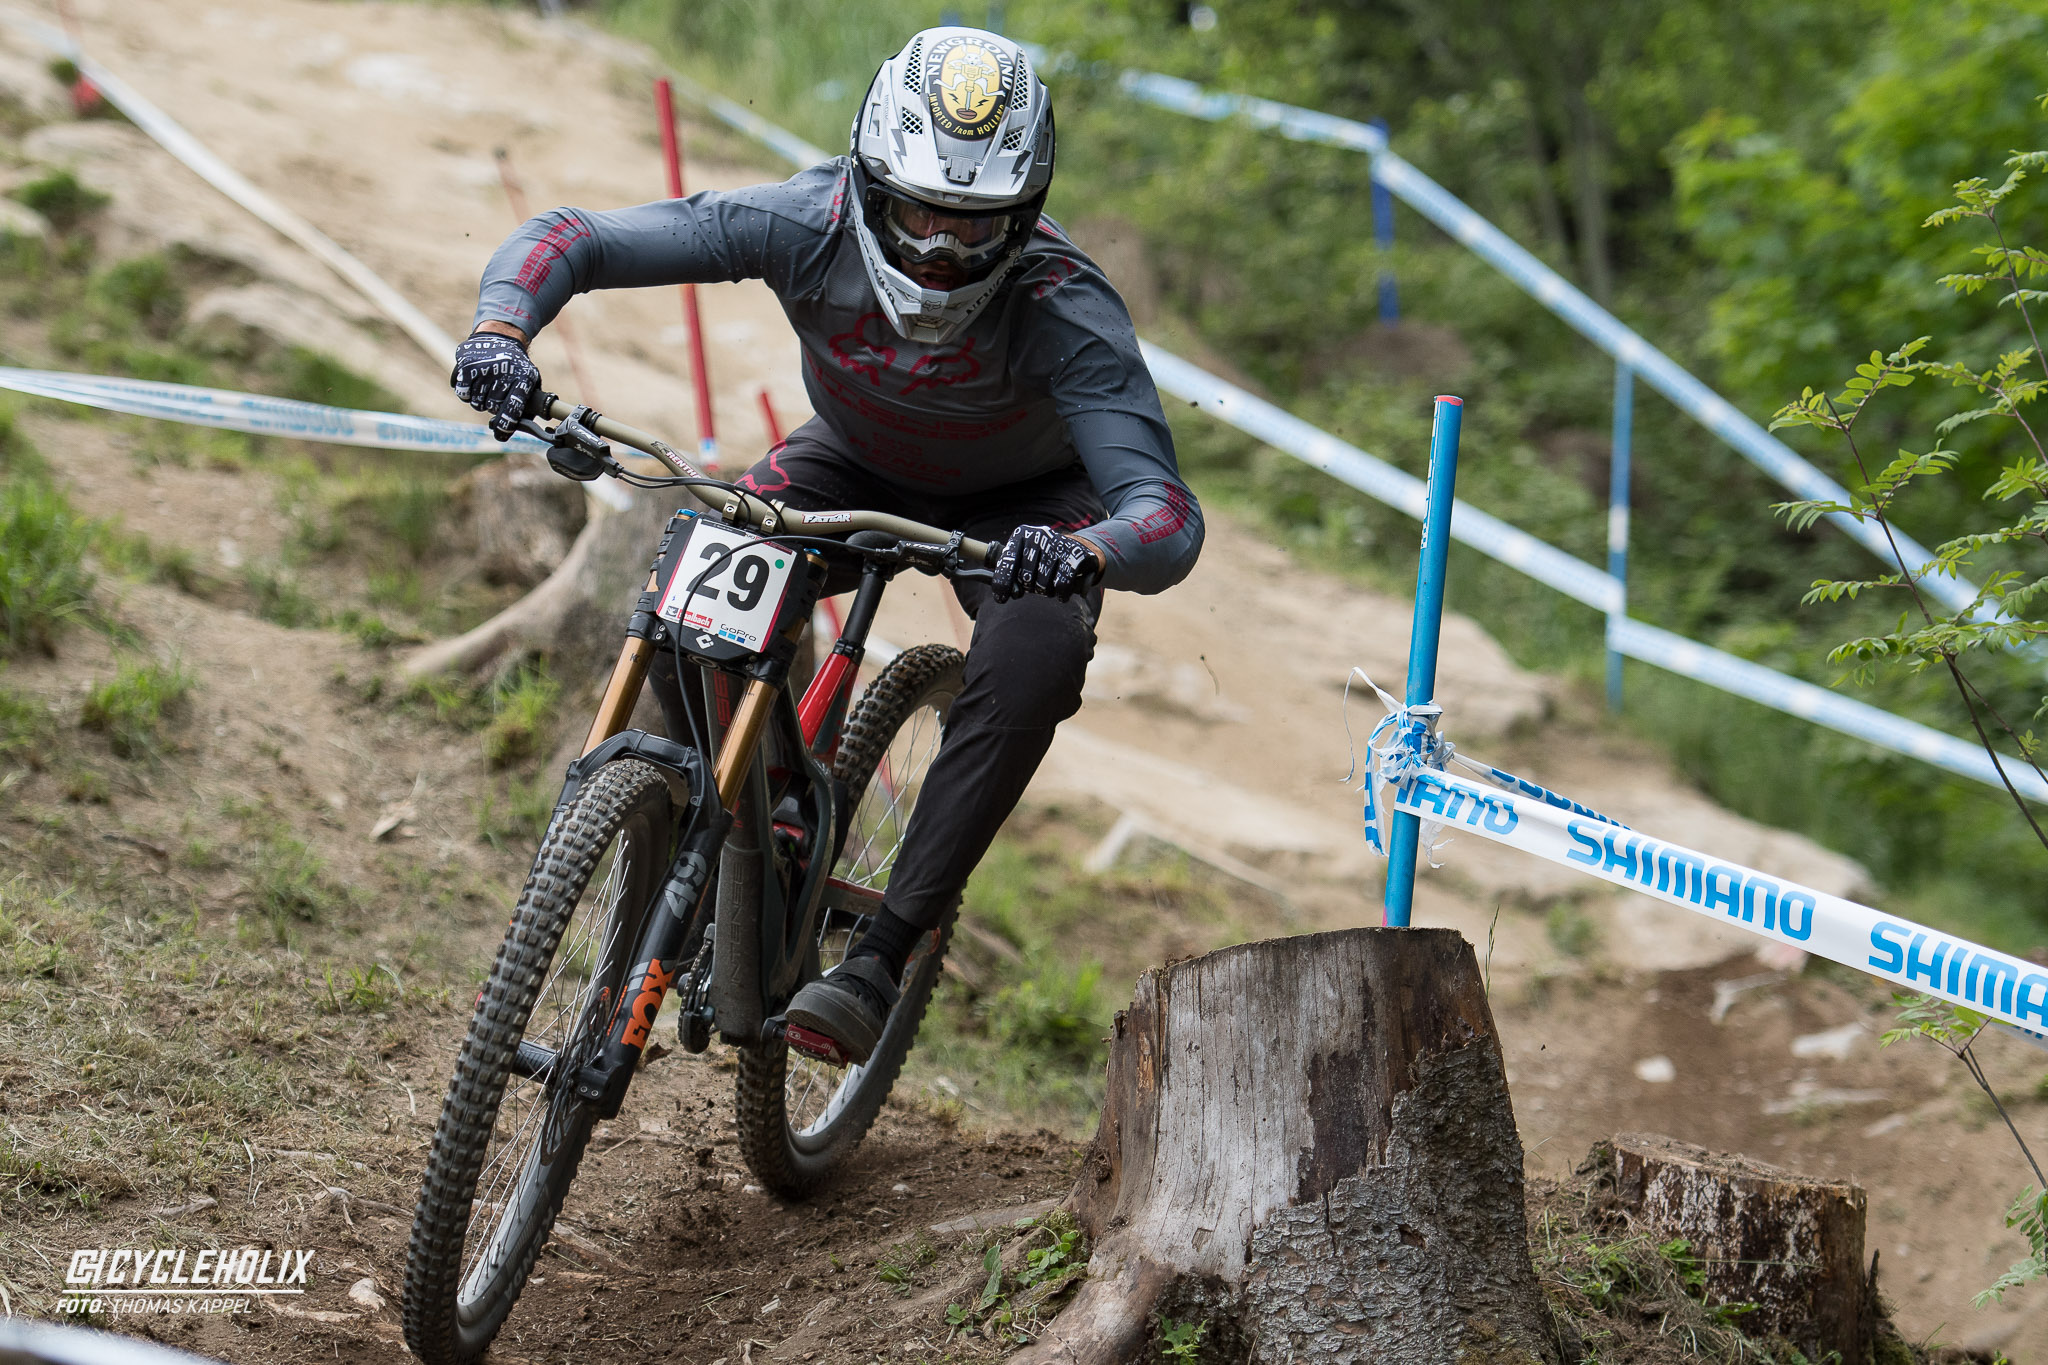 2019 Downhill Worldcup Leogang Finale Action QA 12